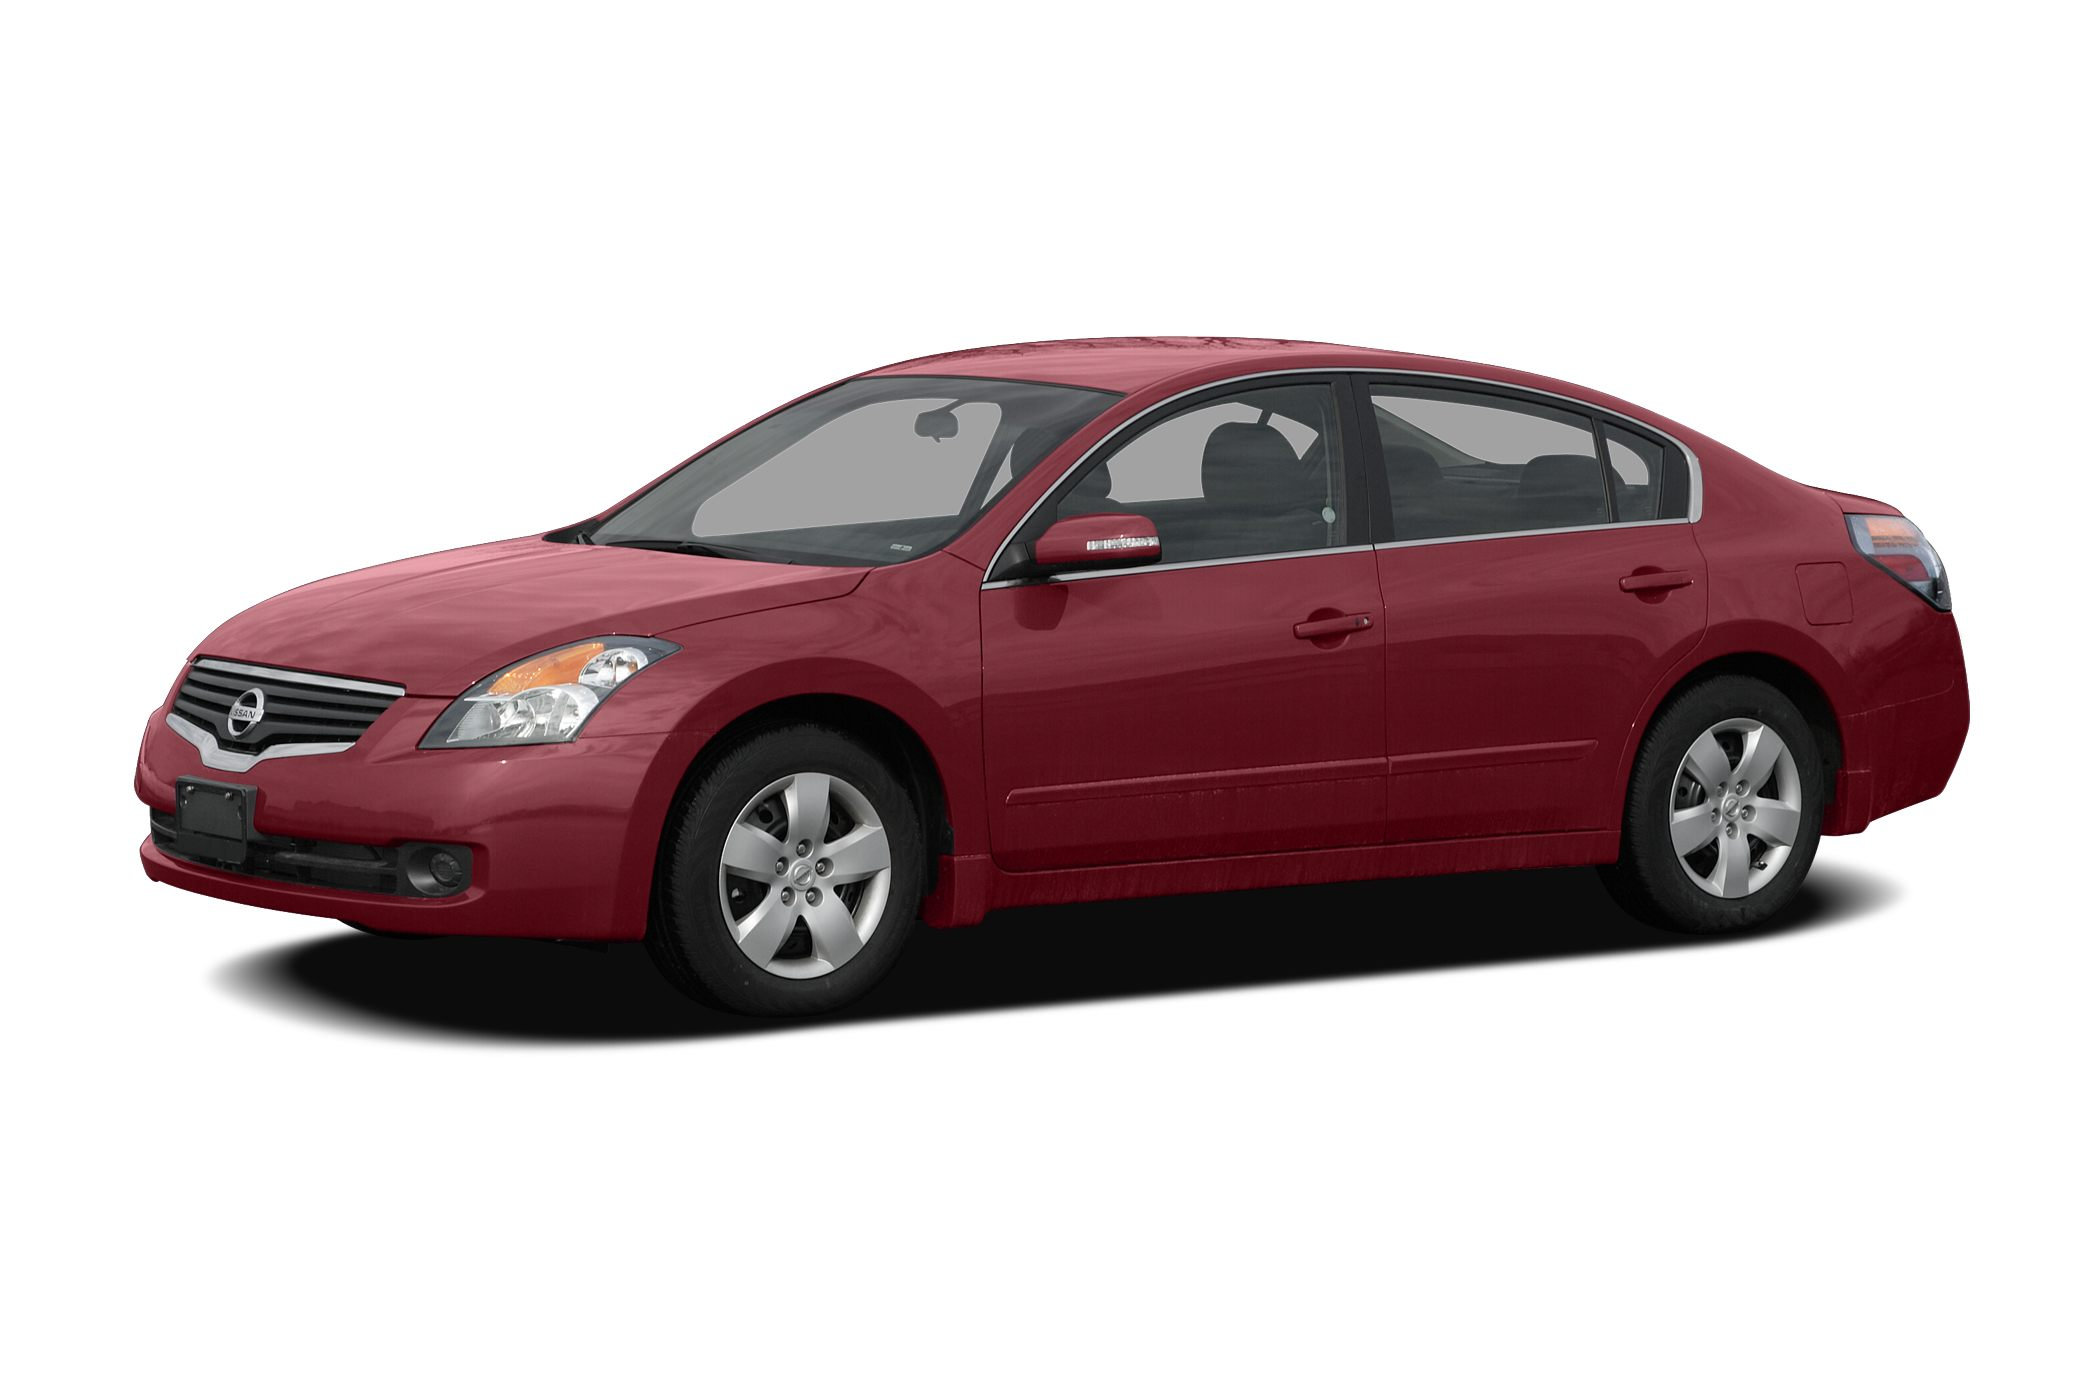 2008 Nissan Altima 3.5 SL Sedan for sale in Bethlehem for $7,995 with 62,806 miles.